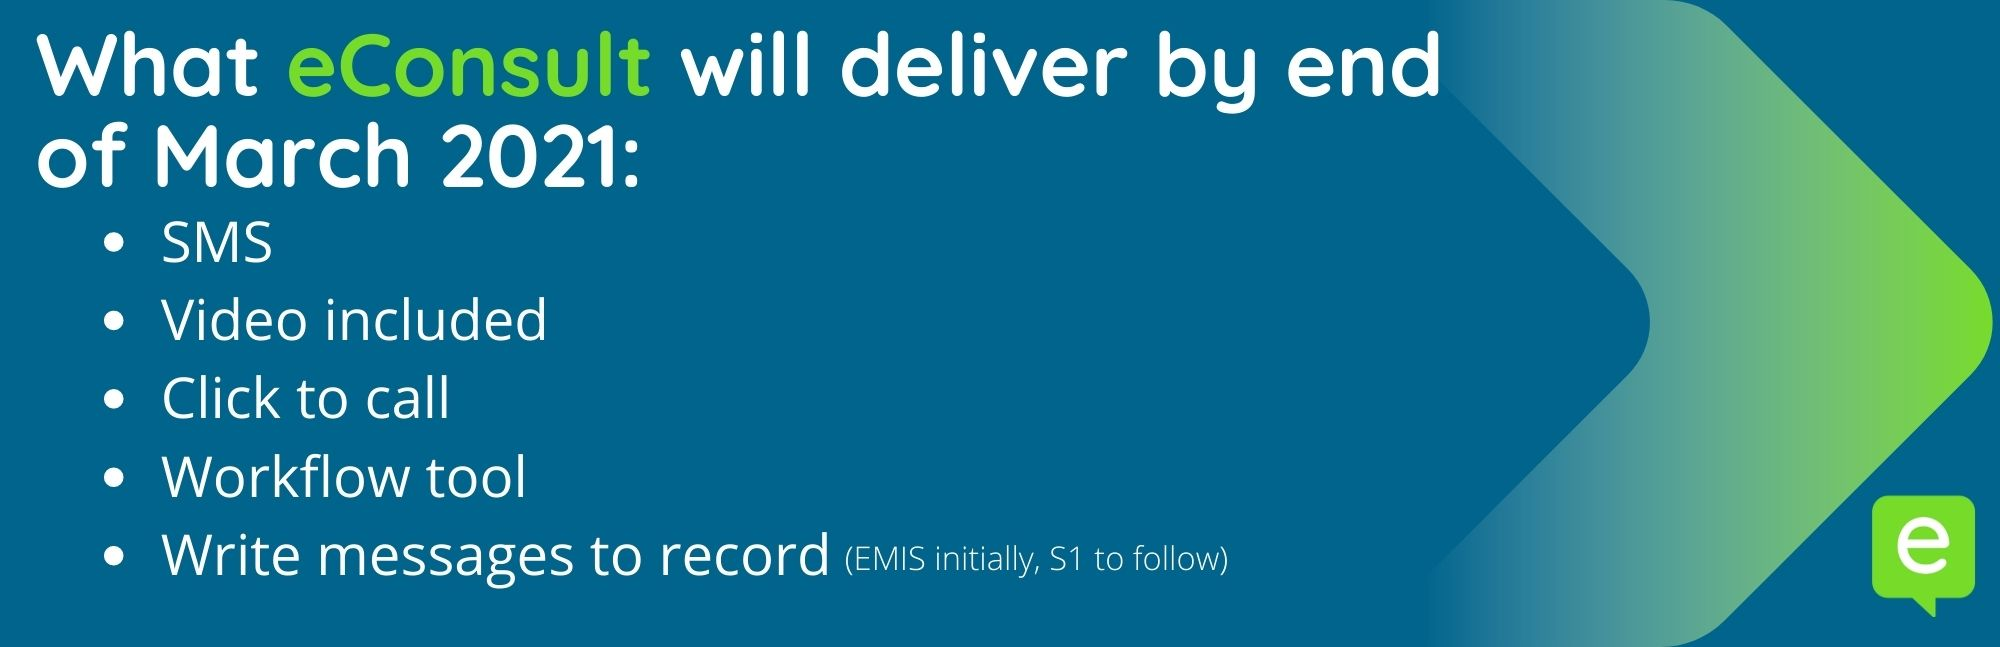 Deliverables summary